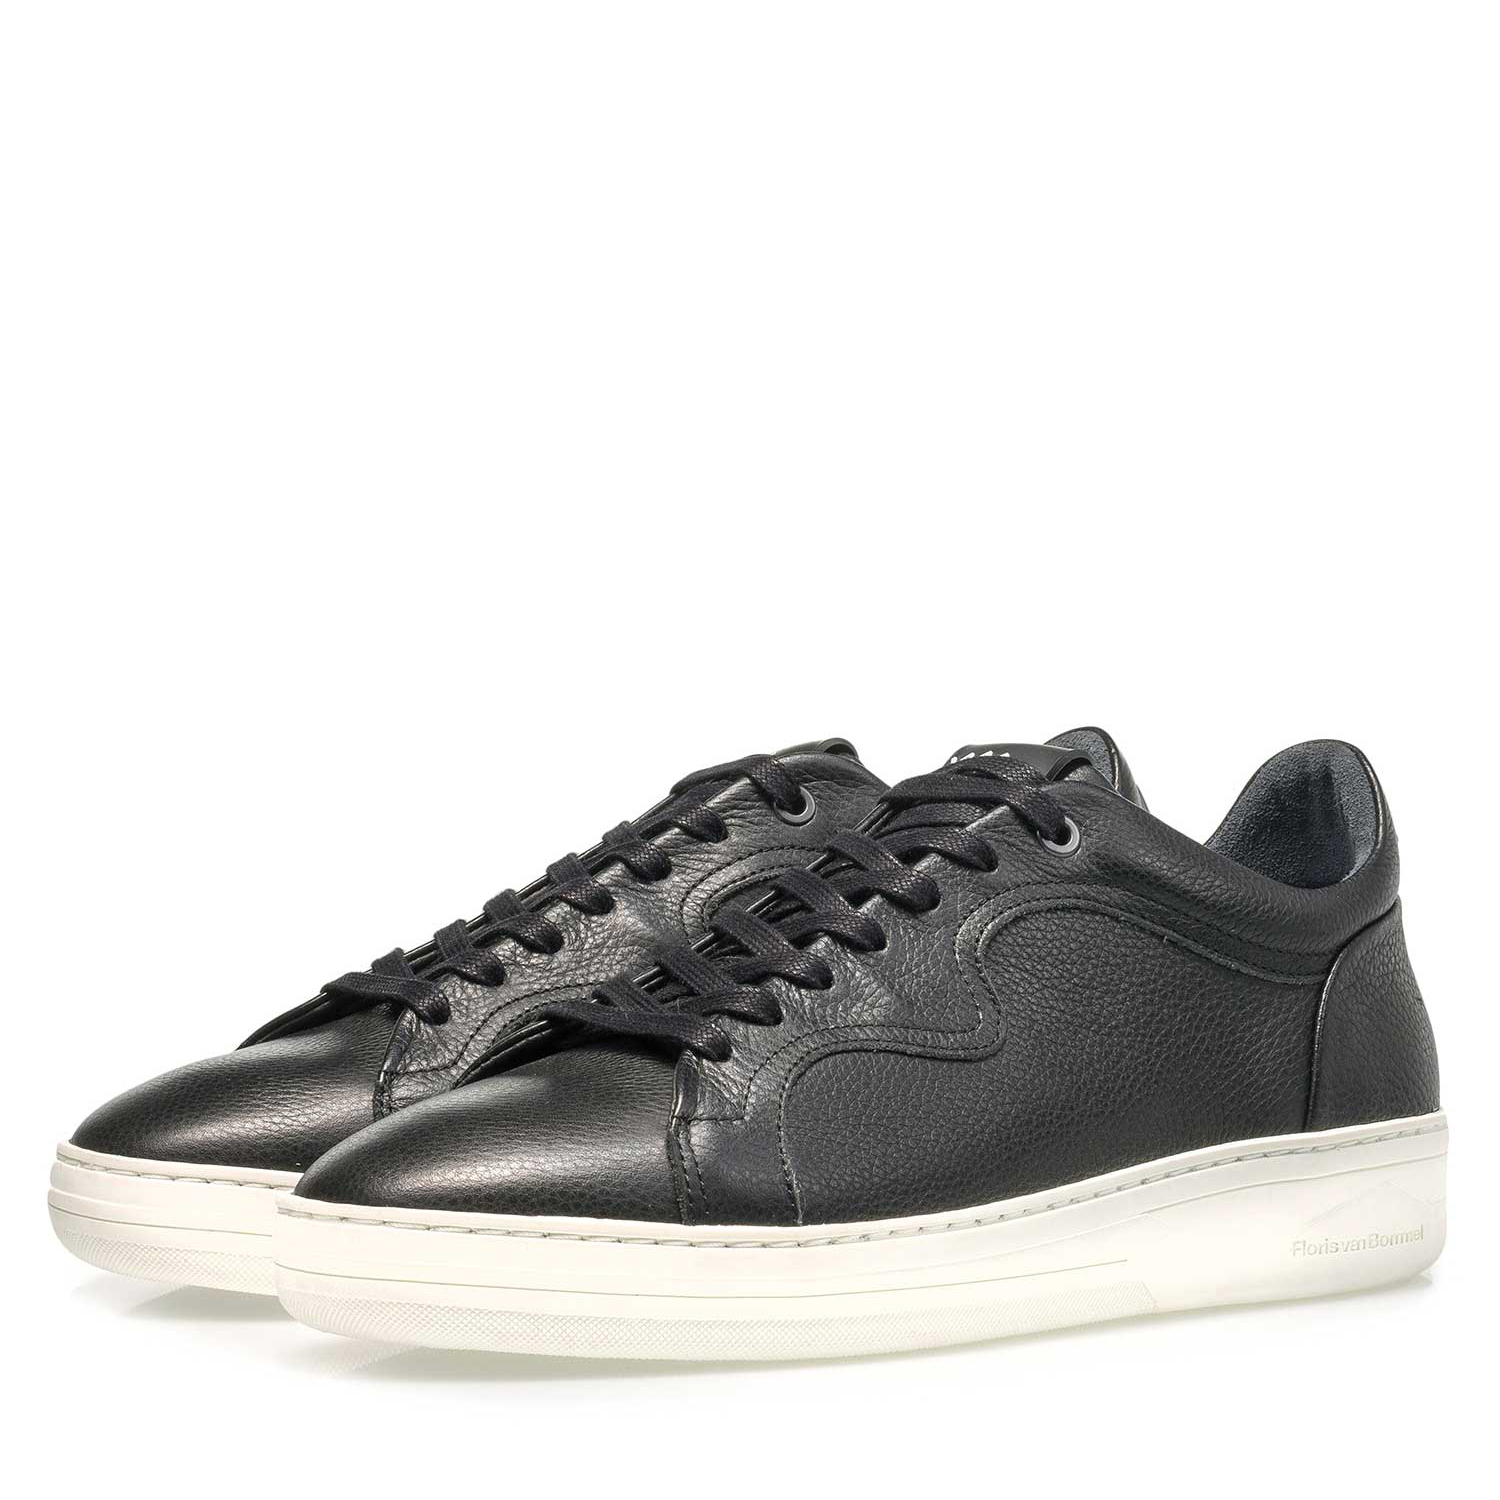 13225/04 - Black calf leather sneaker